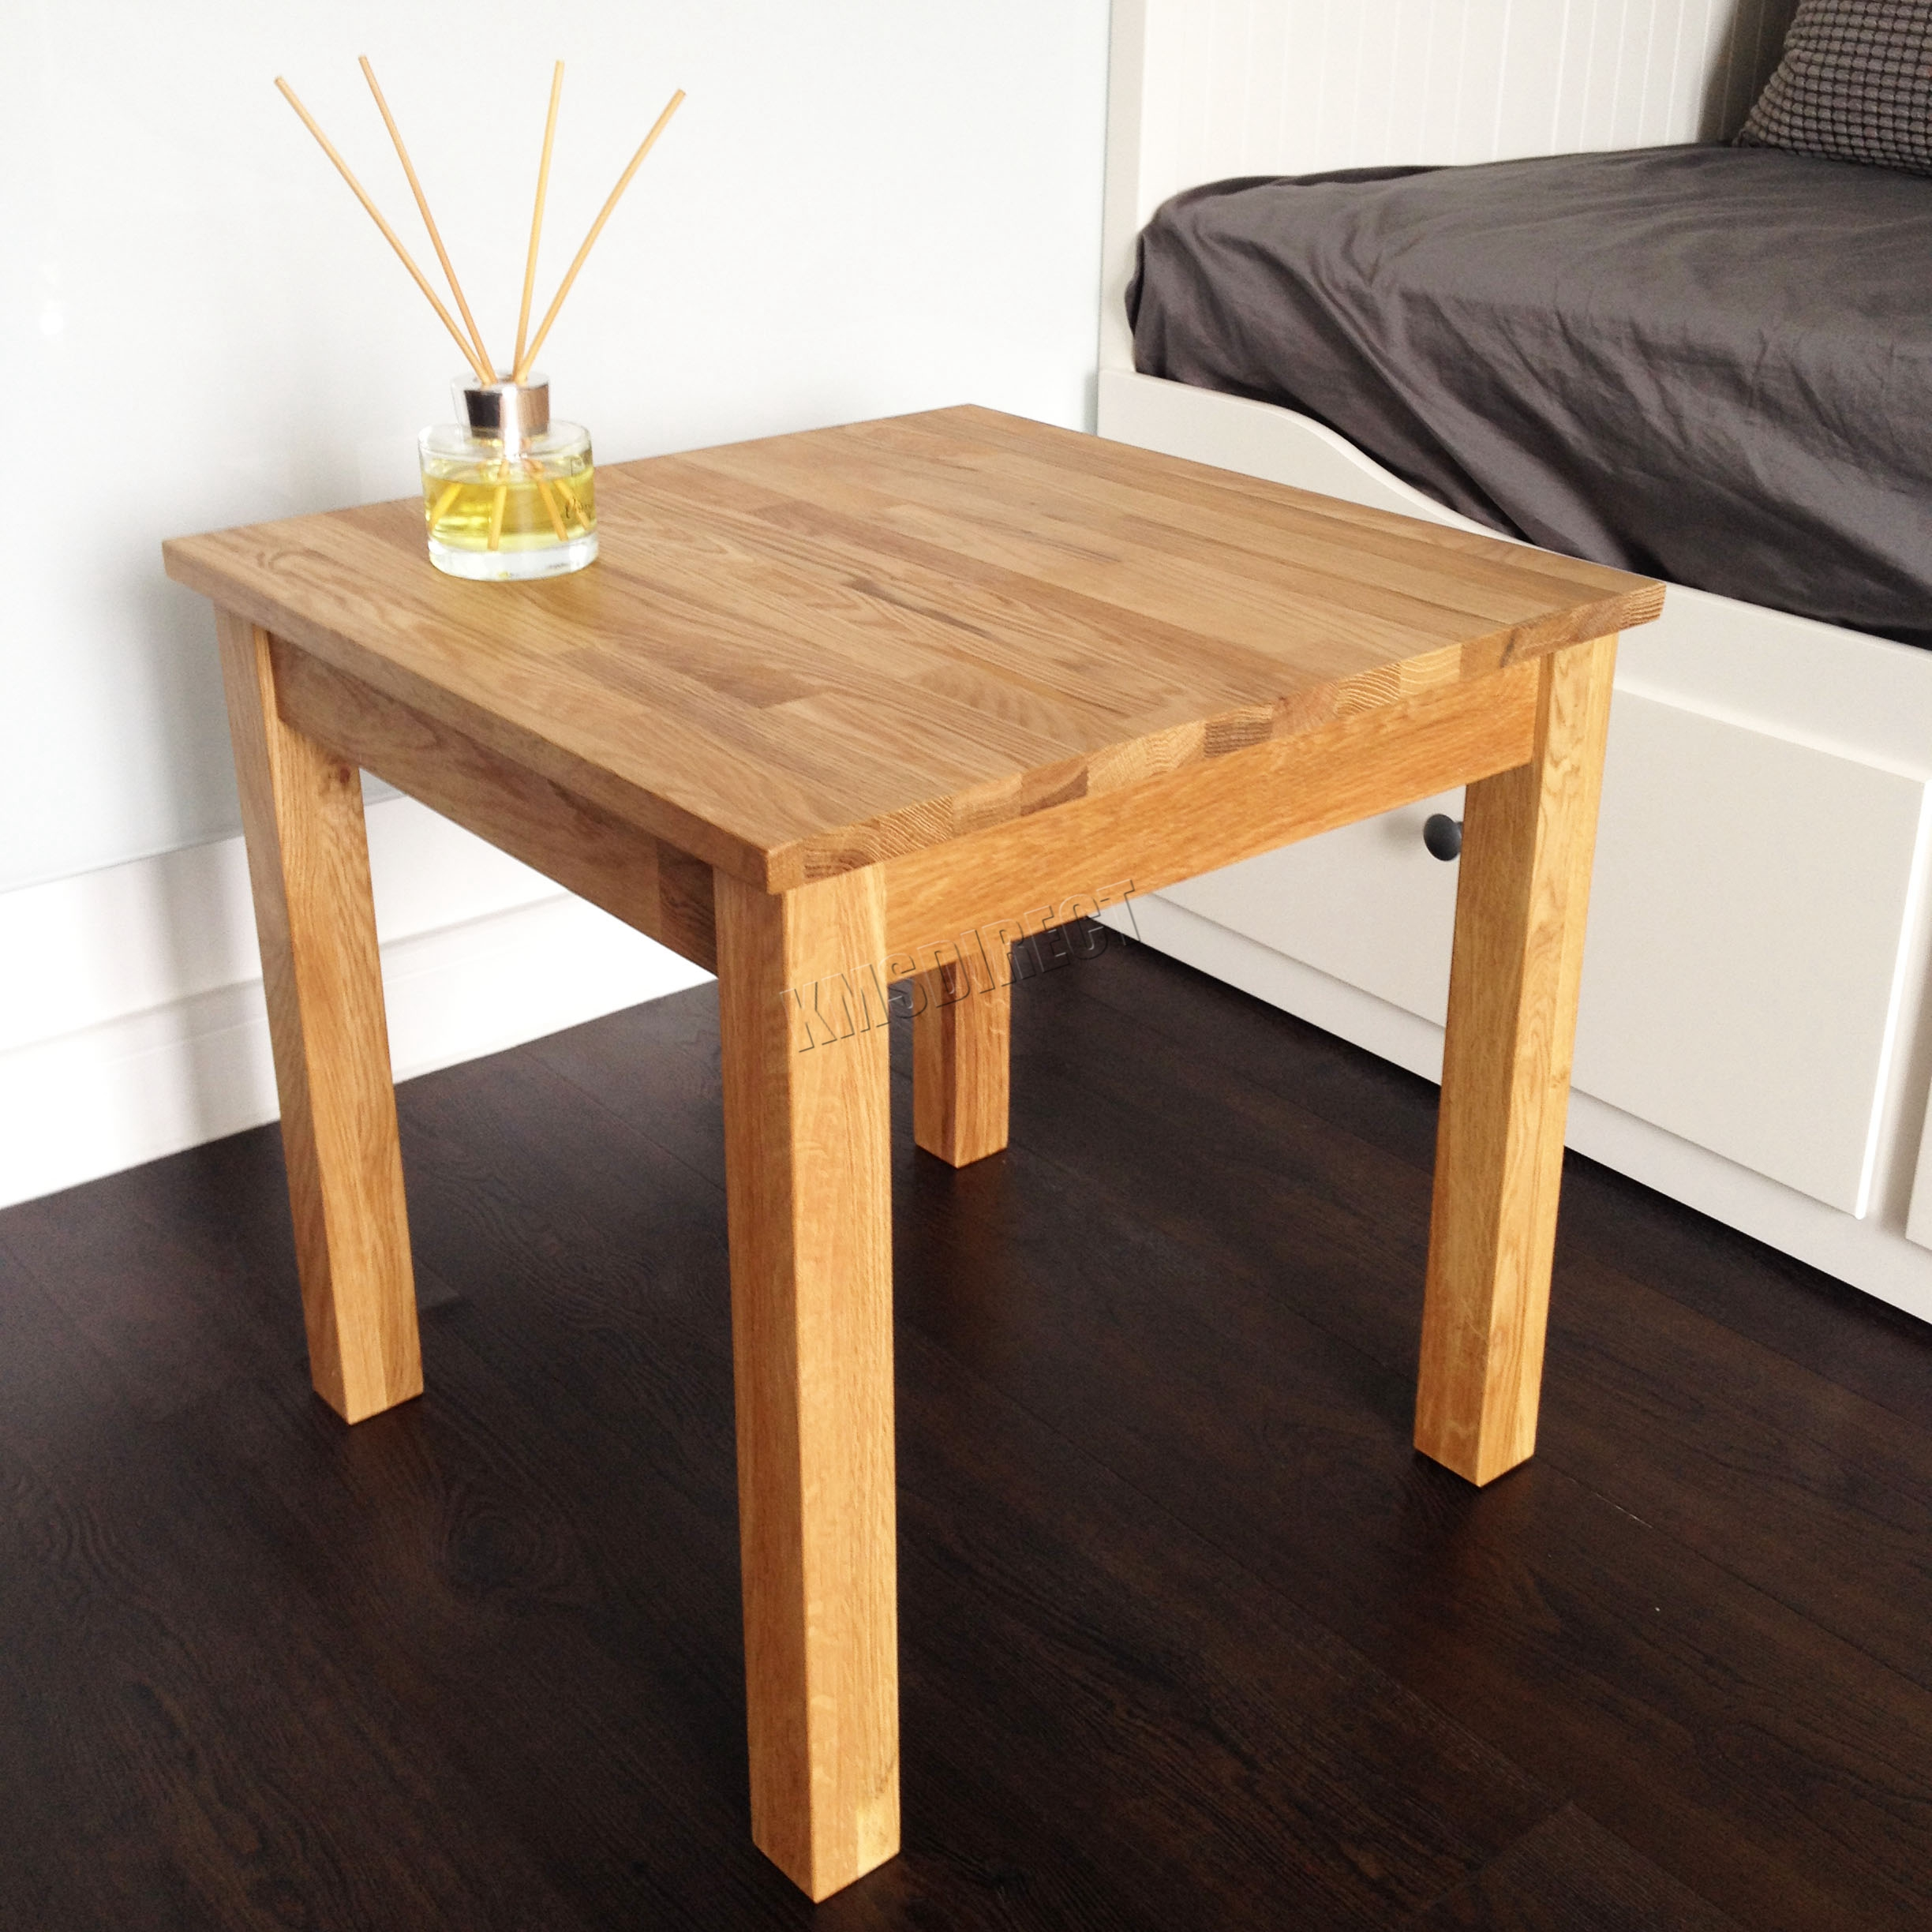 Foxhunter Solid Oak Natural Furniture Dining Bench Wooden Seat Coffee Table New Ebay